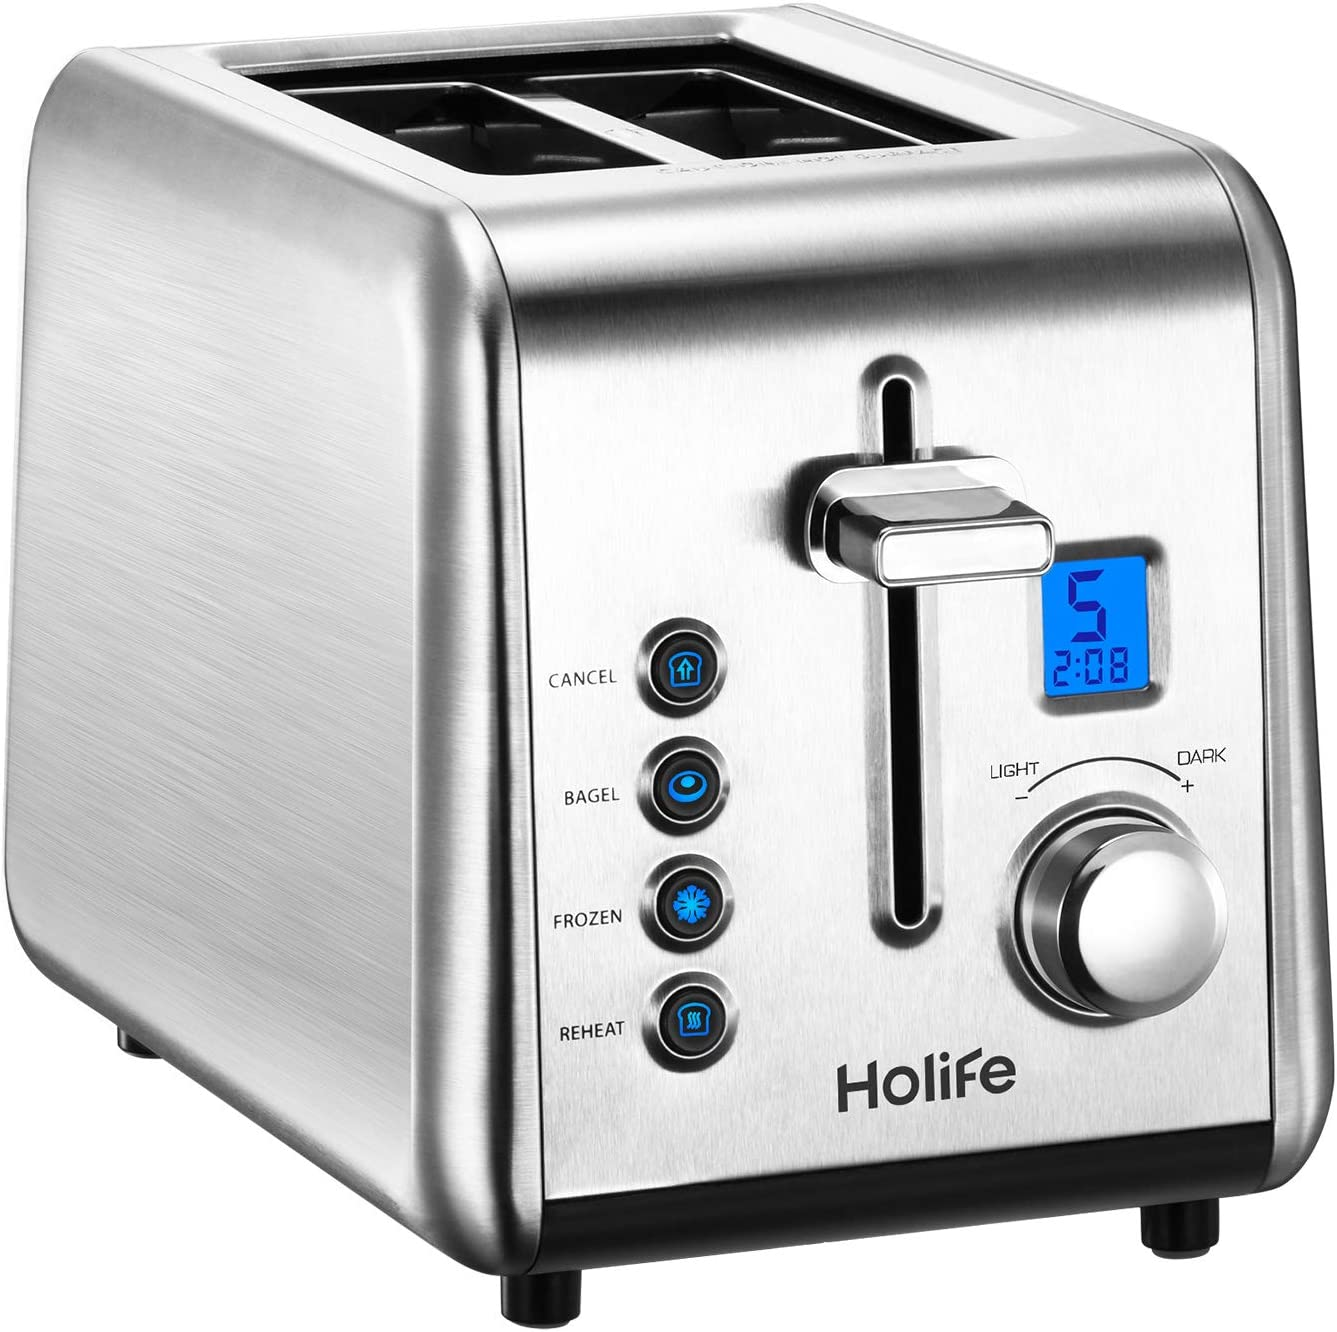 "Holife Stainless Steel Bagel Toasters with LCD Timer, 6 Bread Settings, Bagel/Defrost/Reheat Function, 1.5"" Wide Slots, Removable Crumb Tray, 900W"